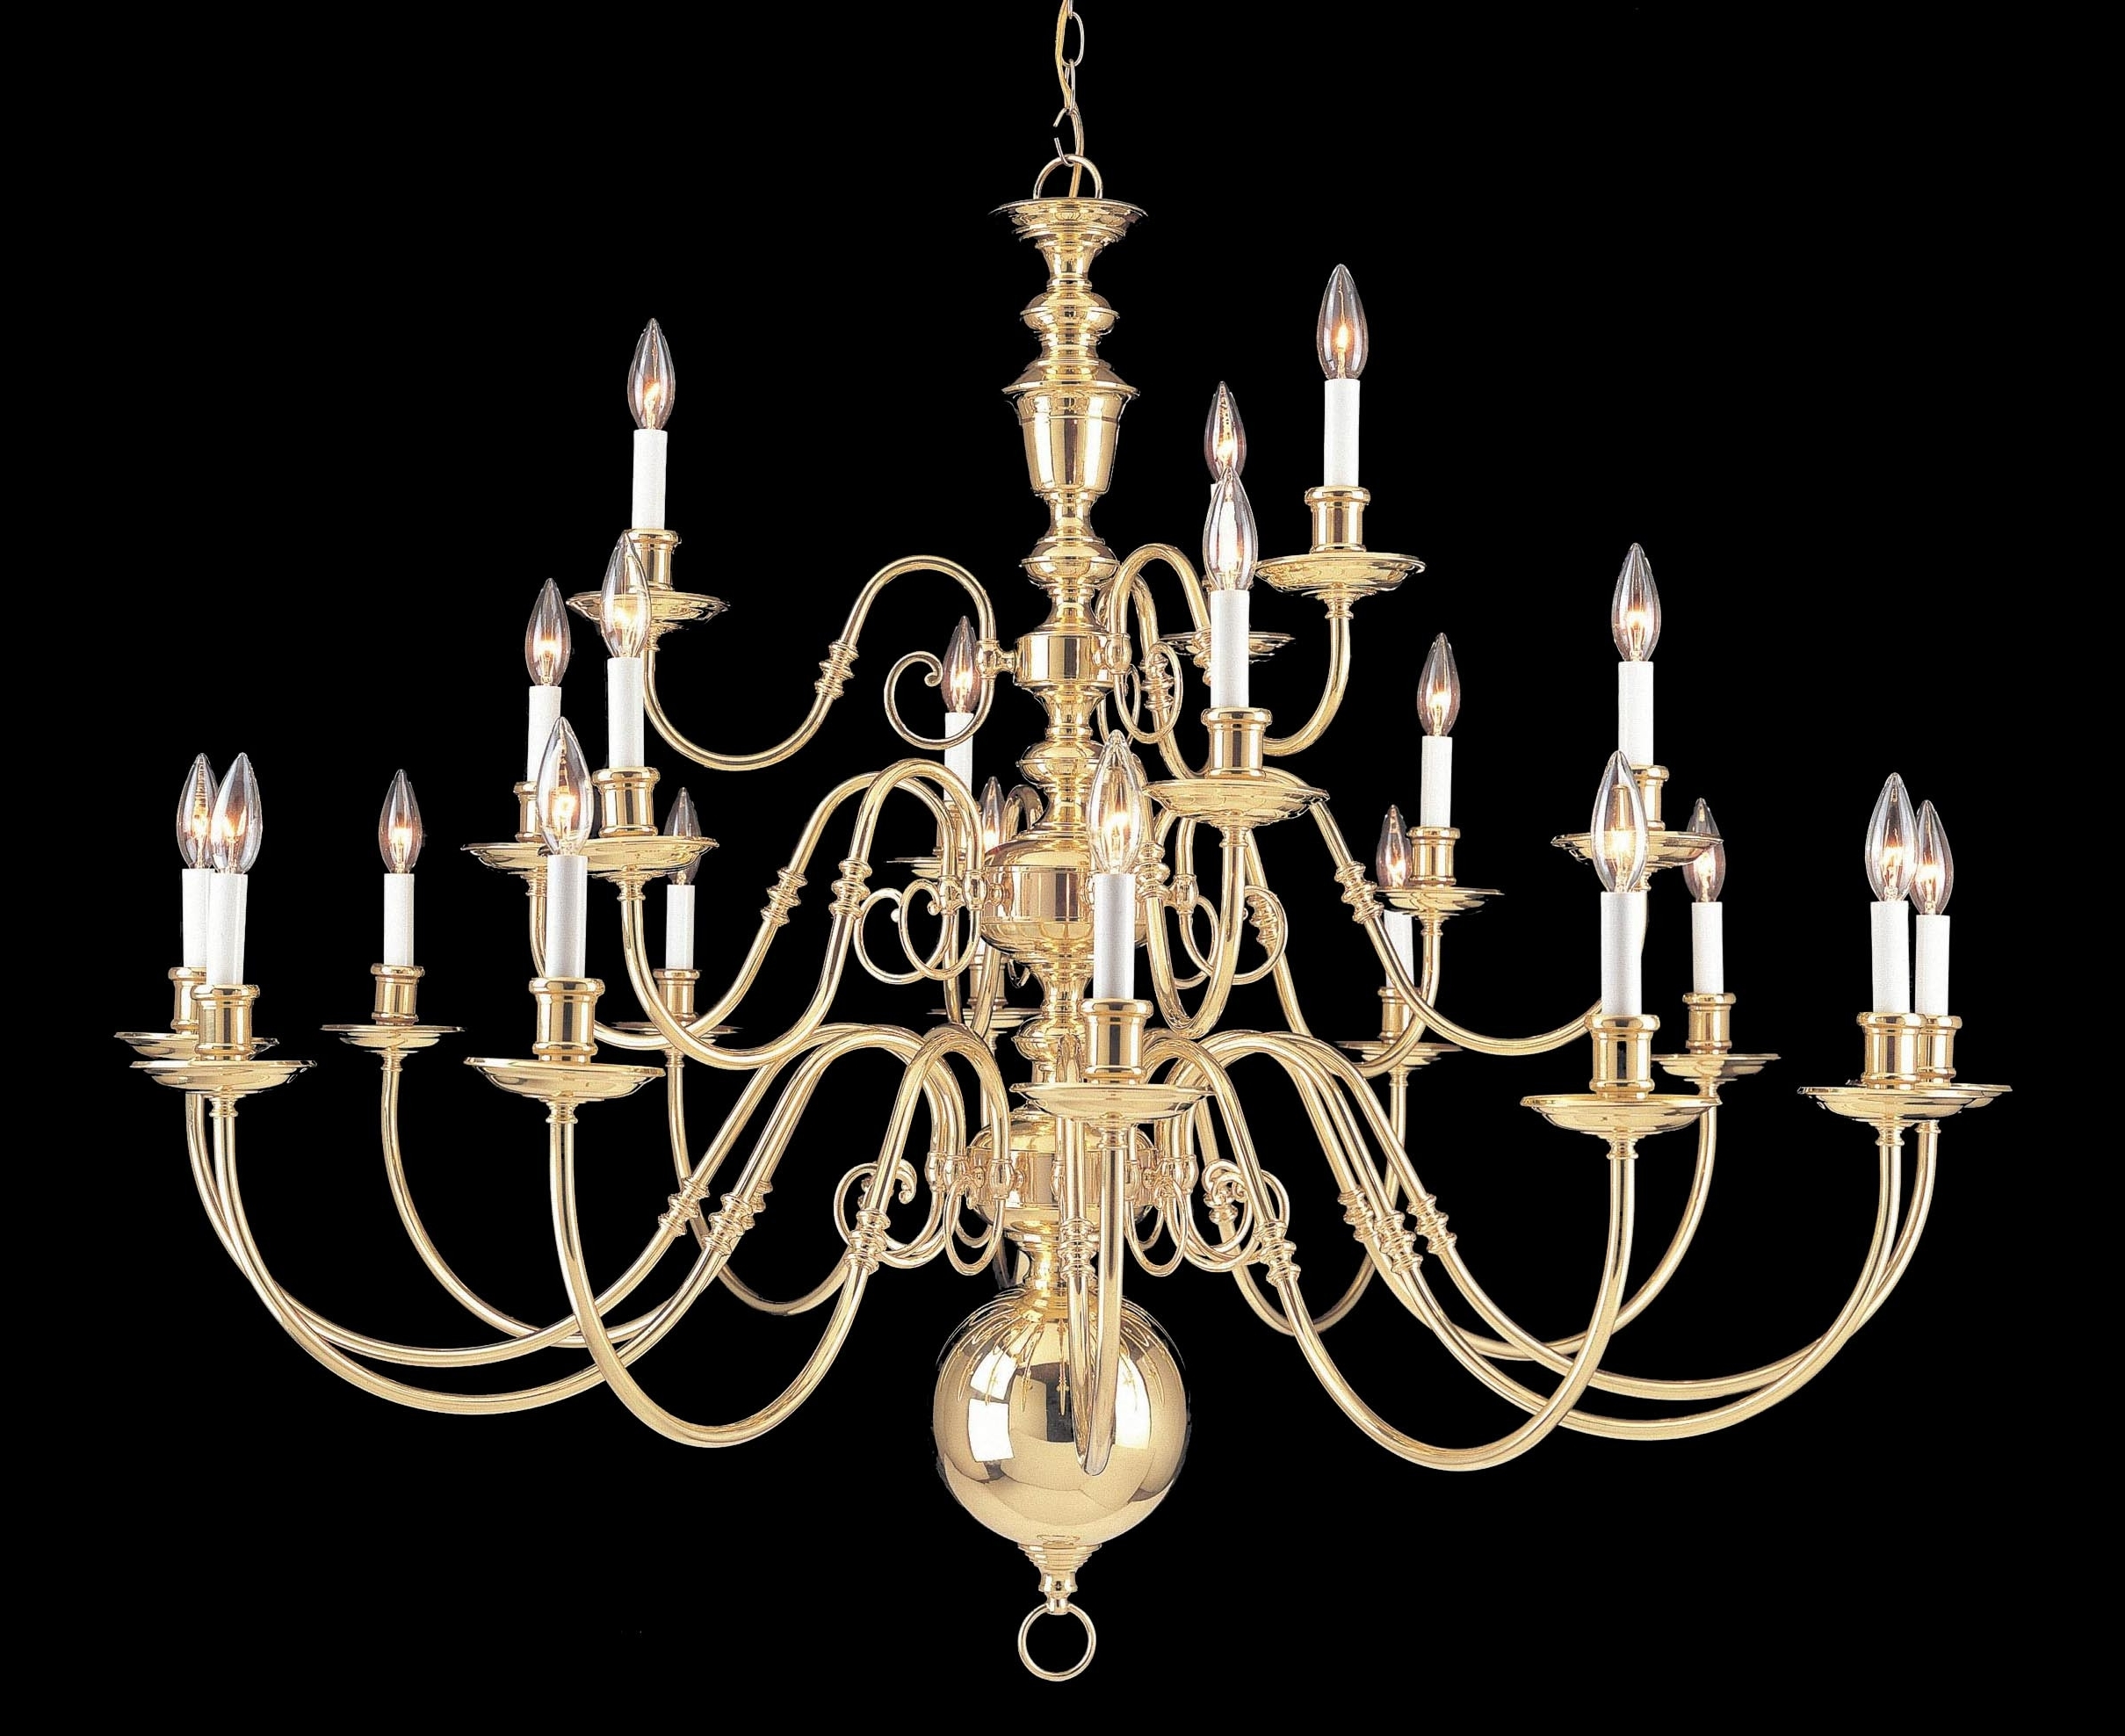 2017 Traditional Brass Chandeliers In Chandeliers : Marvelous Brass Chandeliers New 12 Best Collection Of (View 1 of 15)